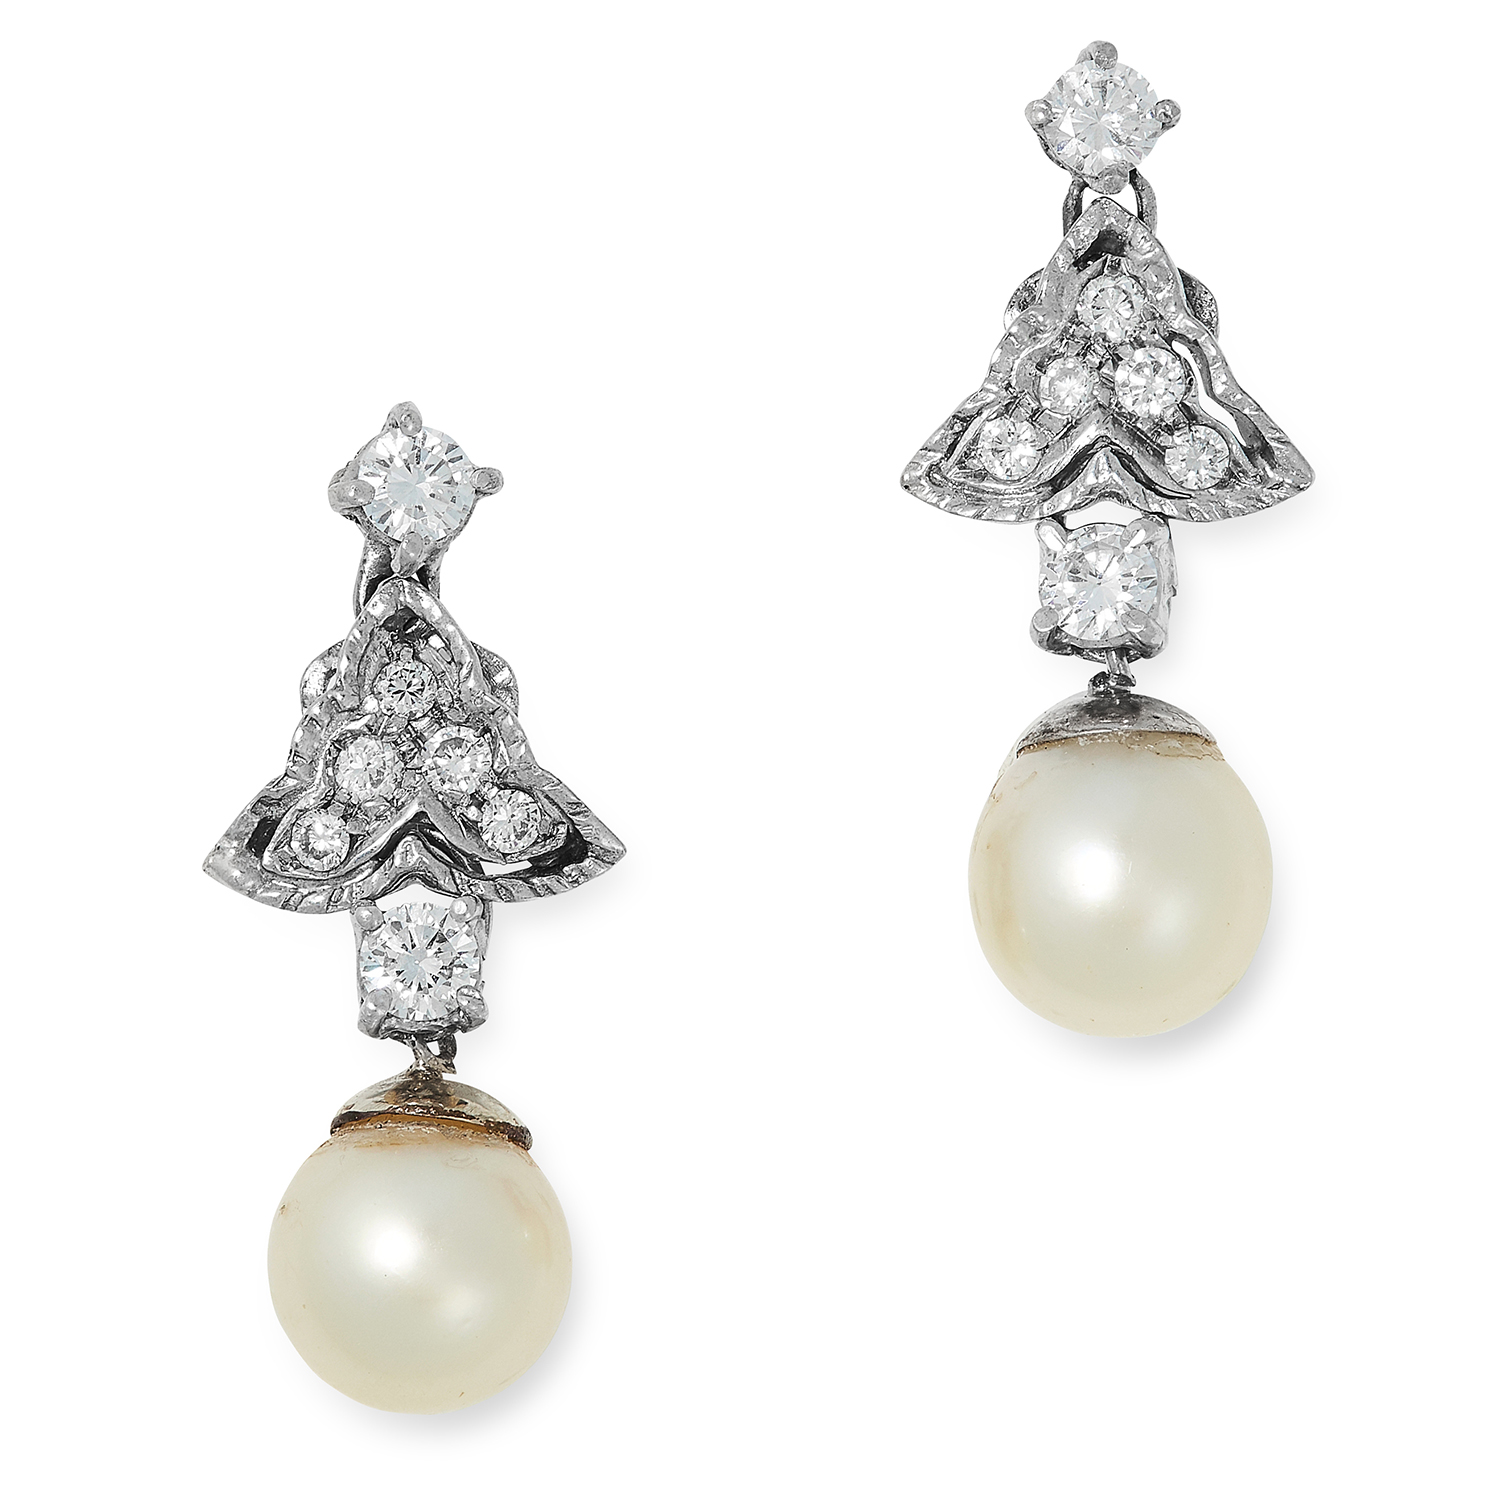 PEARL AND DIAMOND DROP EARRINGS each set with round cut diamonds and suspending a pearl drop, 2.5cm,